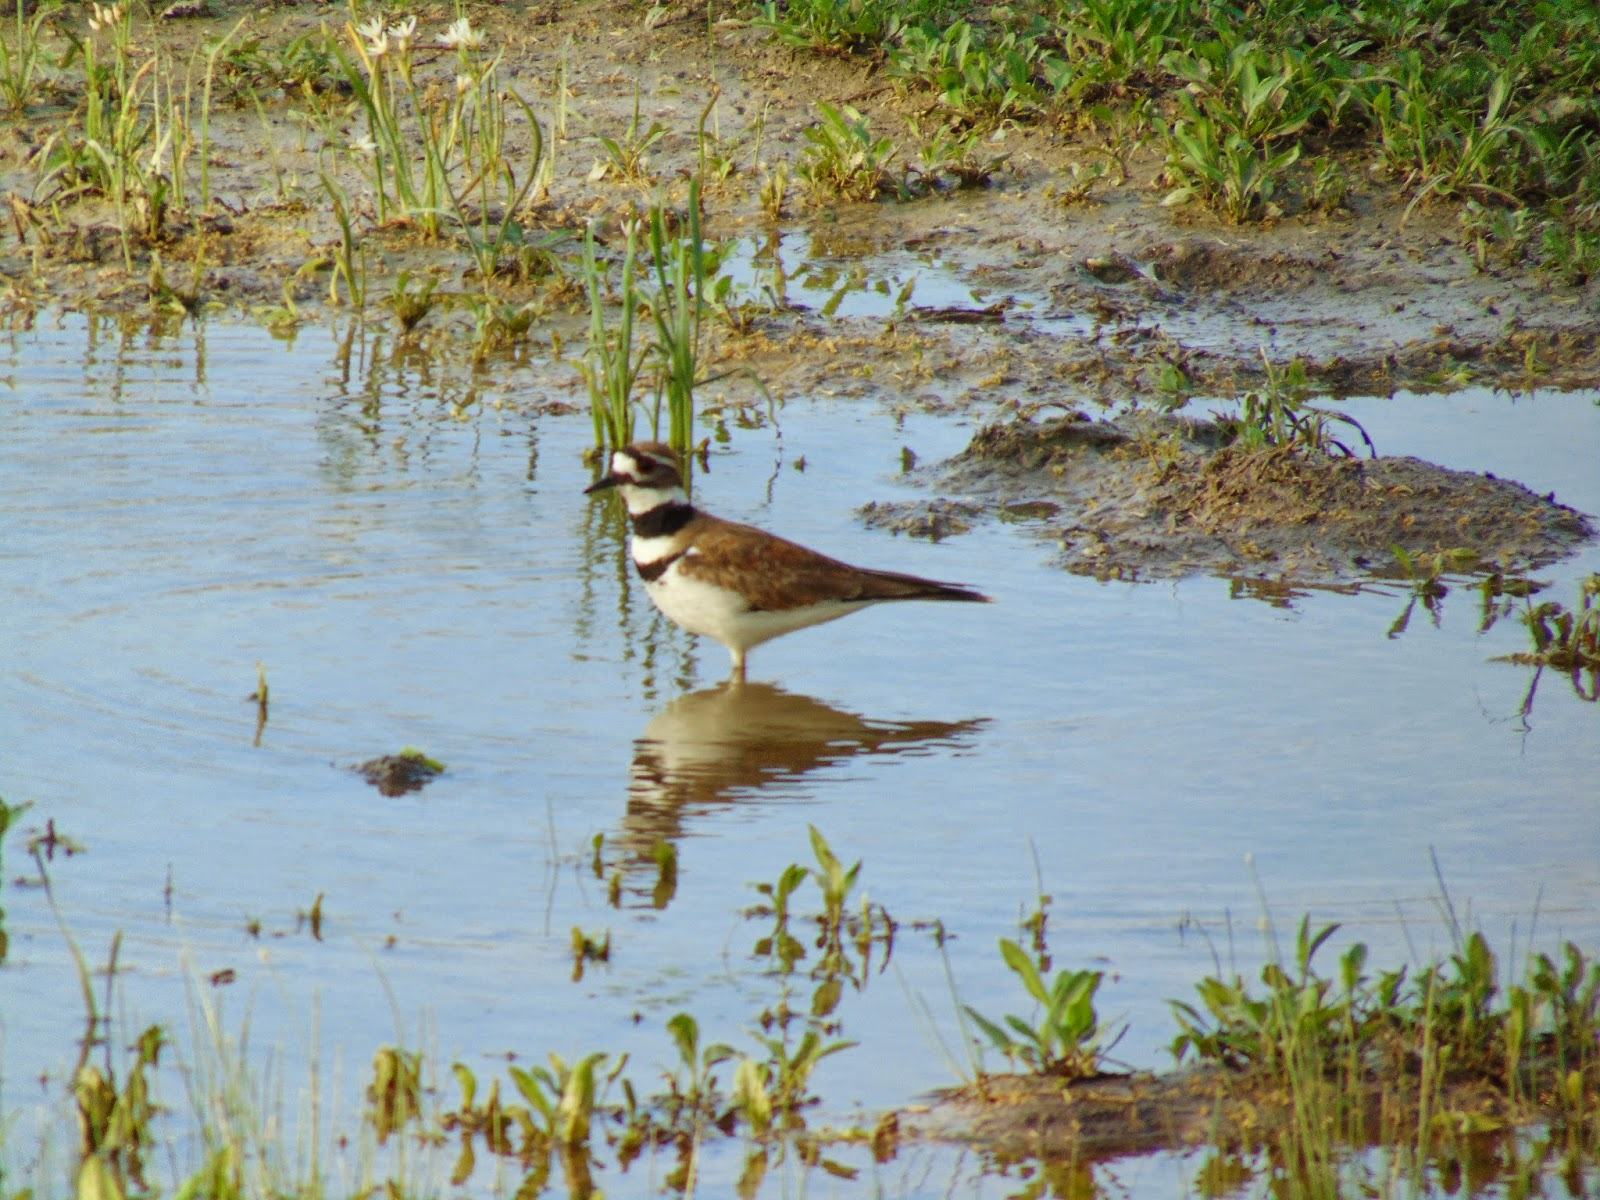 Killdeer or plover bird in Texas pond water